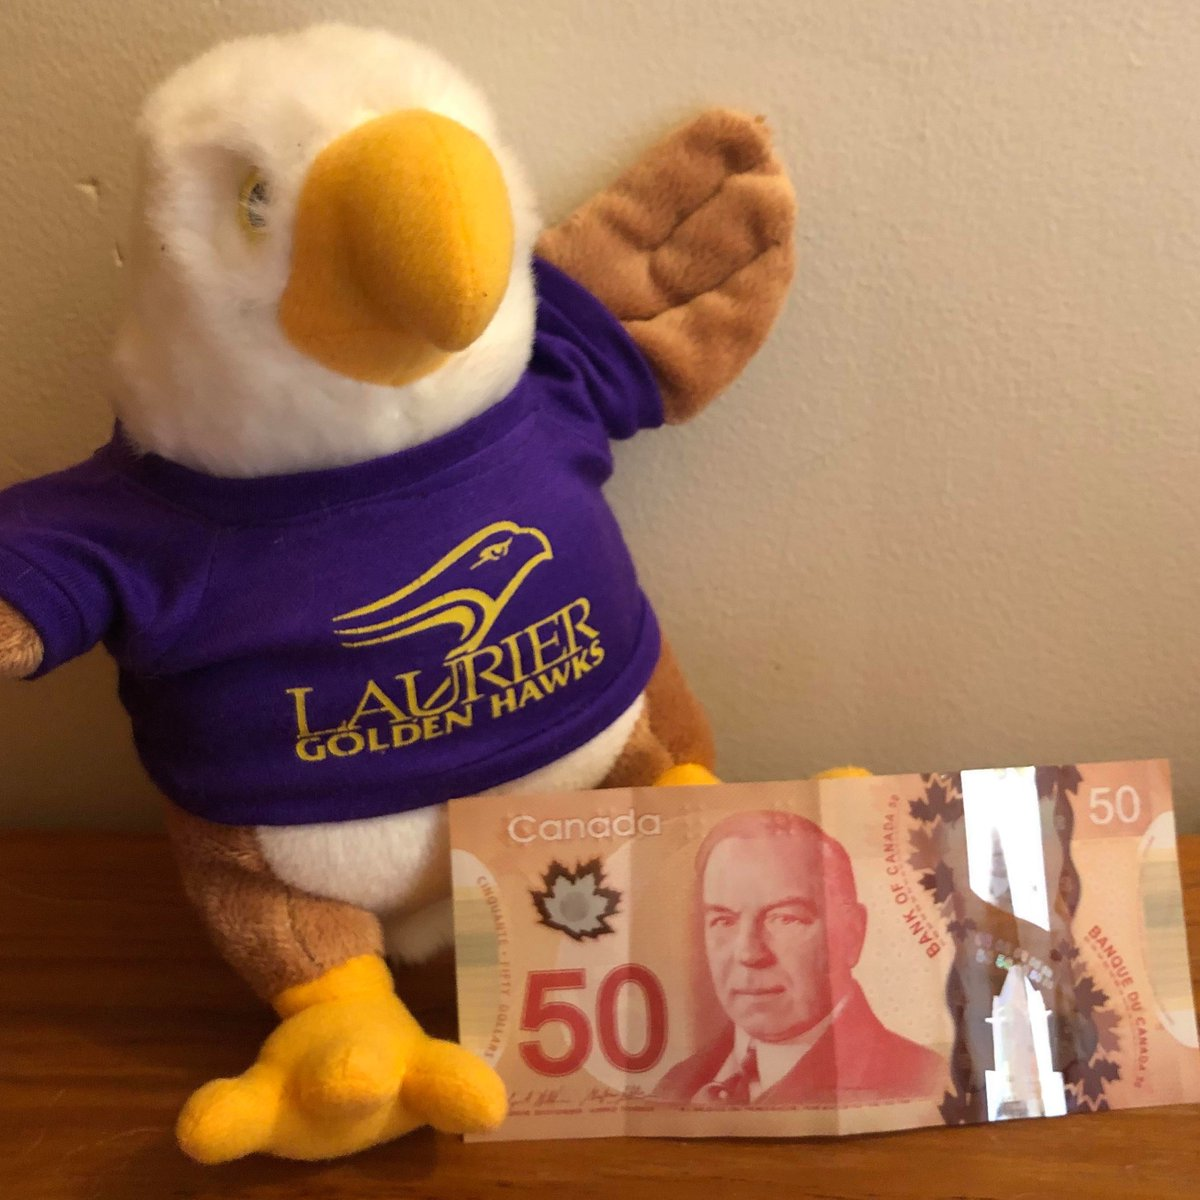 In the mood for some special tweetment?  We've got $50 bucks for 3 #golden winners coming at your #ConvenienceAcct Monday, Wednesday + Friday   RT = ur chance to winpic.twitter.com/dpzlDjy7od